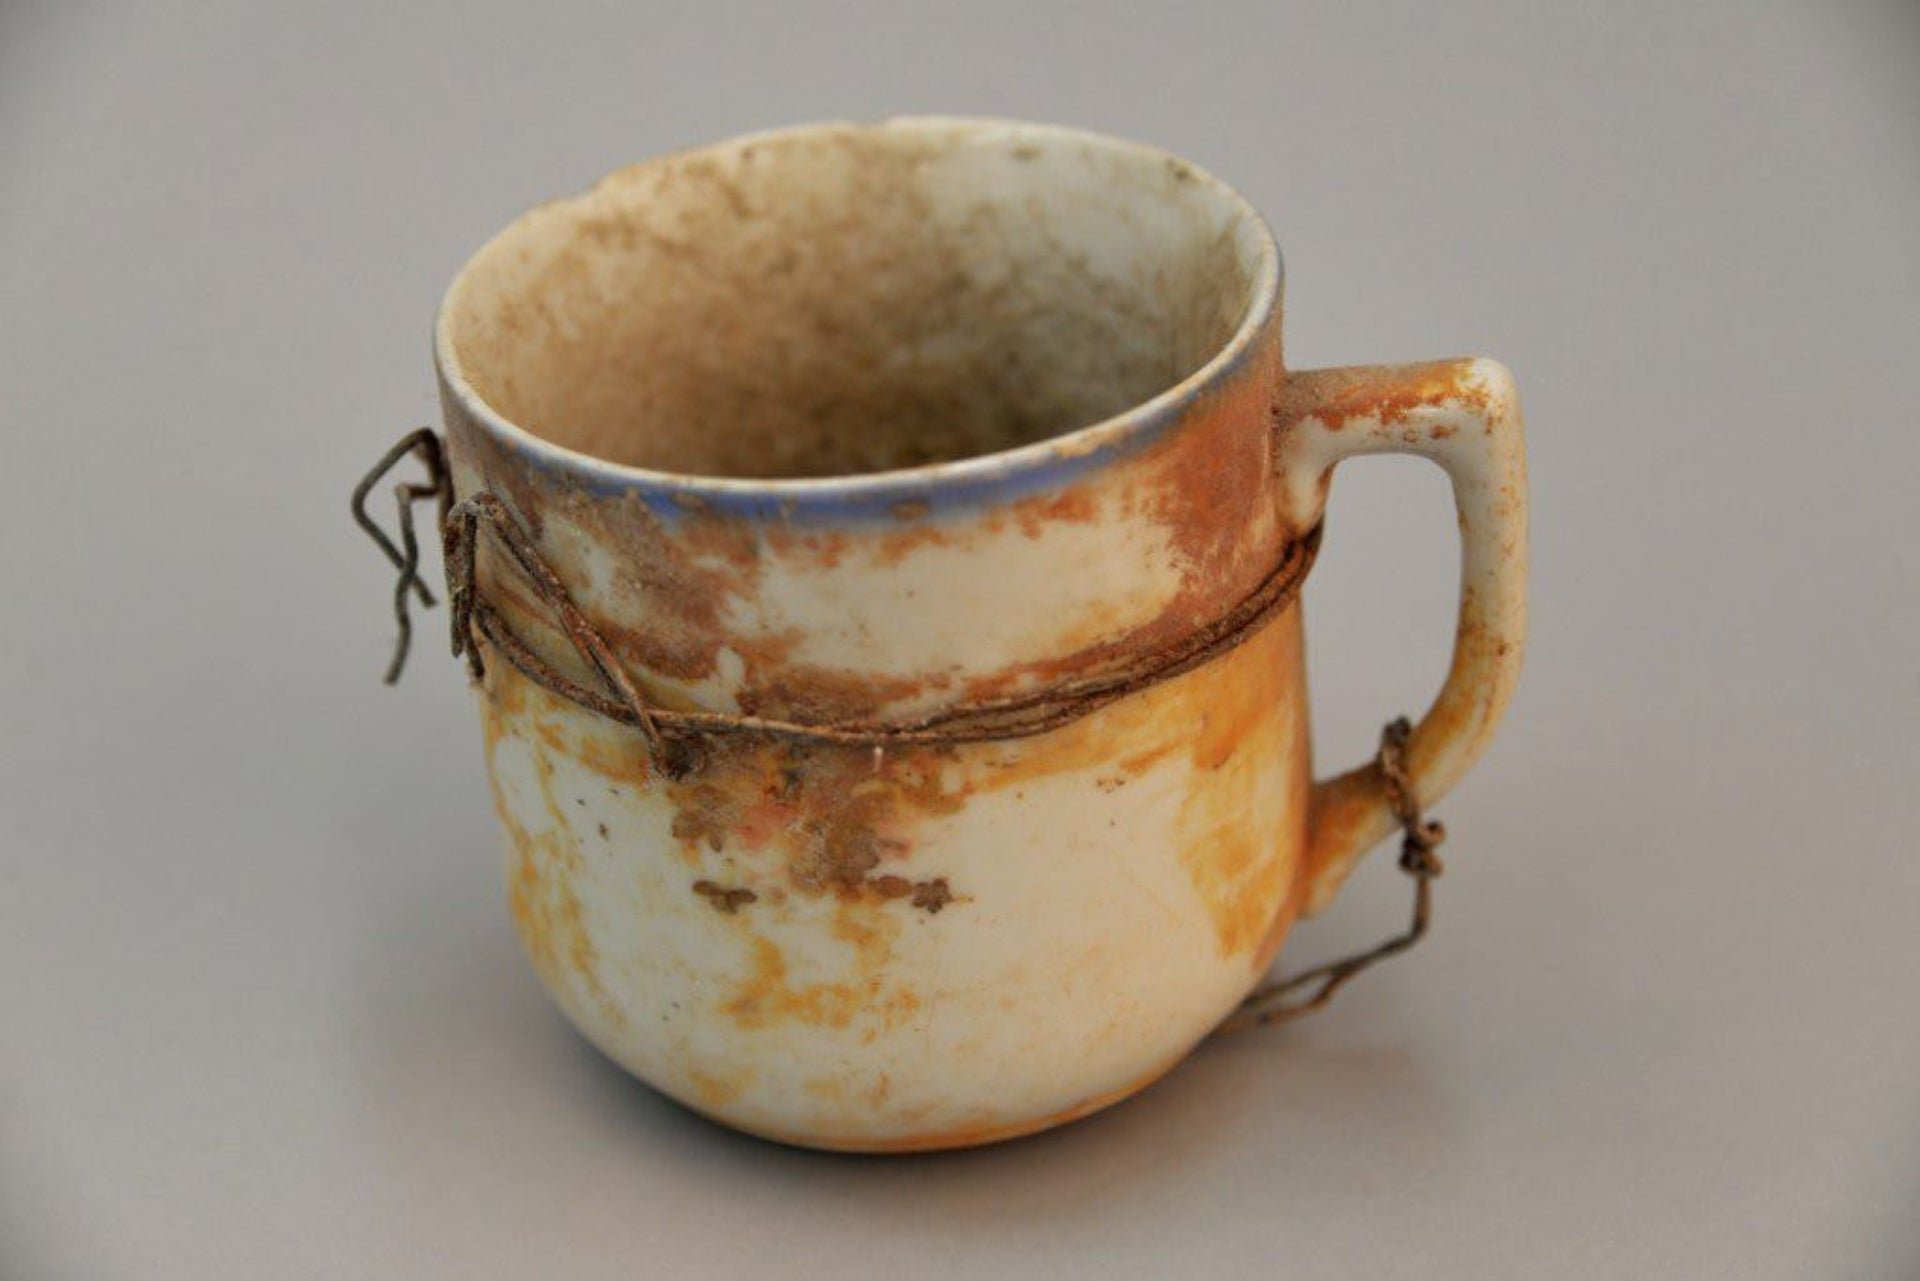 A mug was discovered among the recently revealed personal items from the Auschwitz death camp.